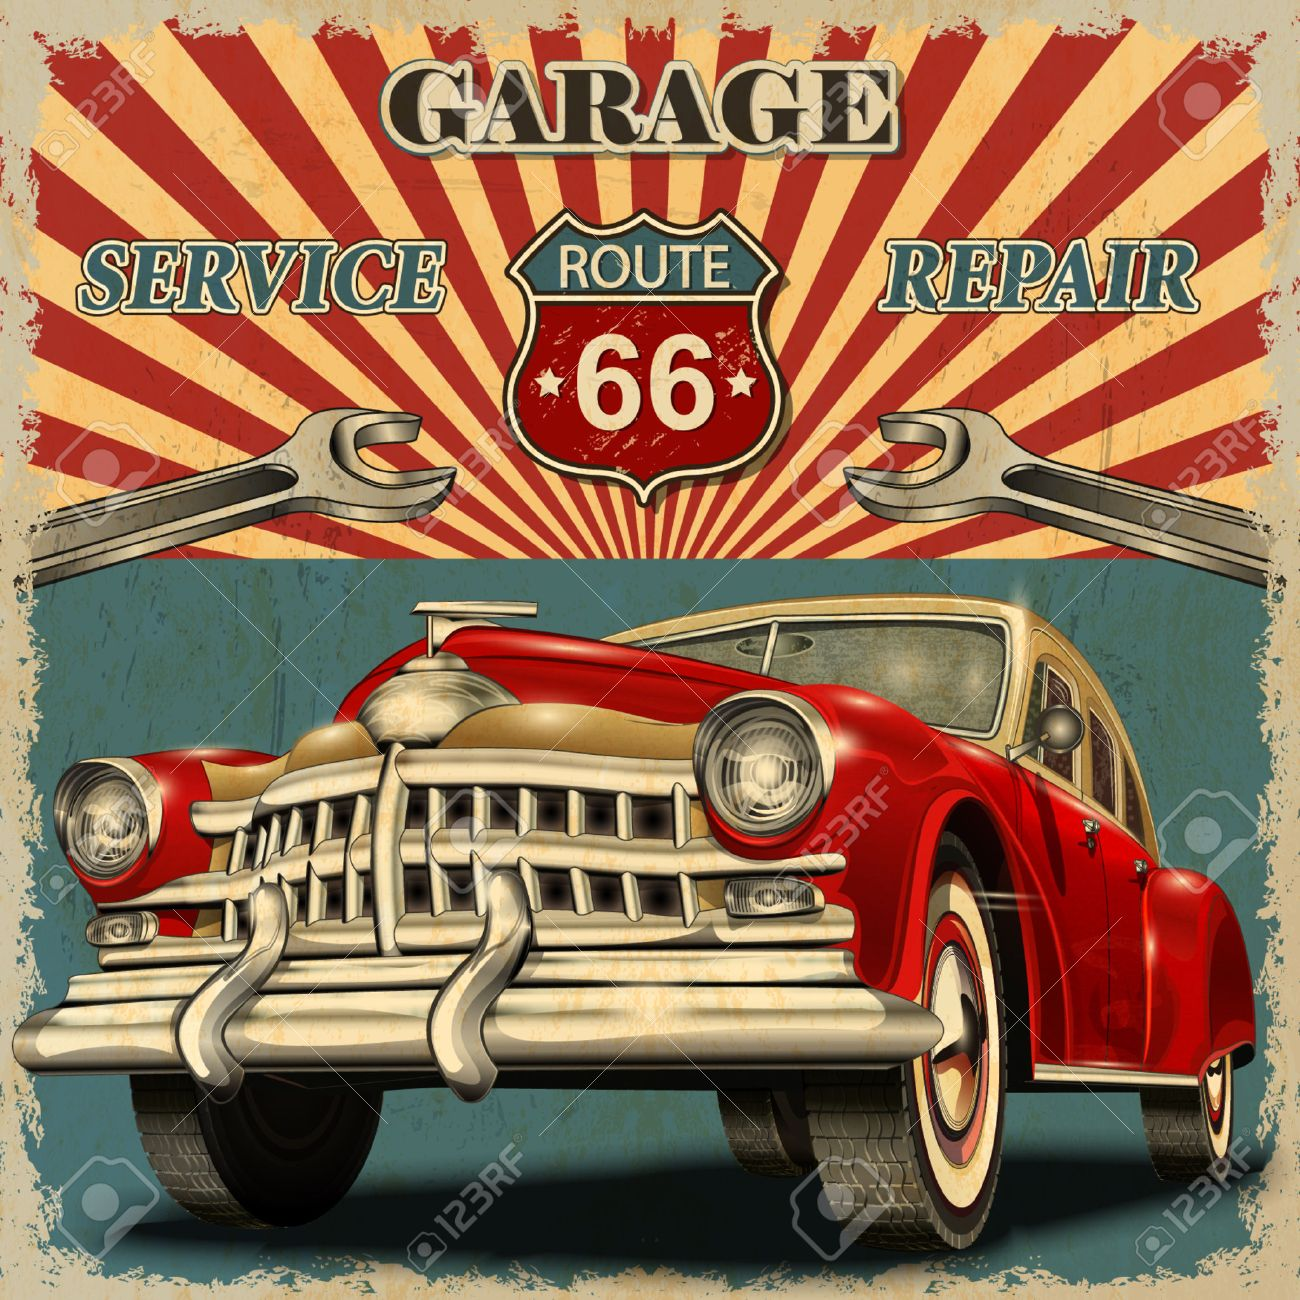 Vintage Garage Retro Poster Royalty Free Cliparts Vectors And Stock Illustration Image 49142886